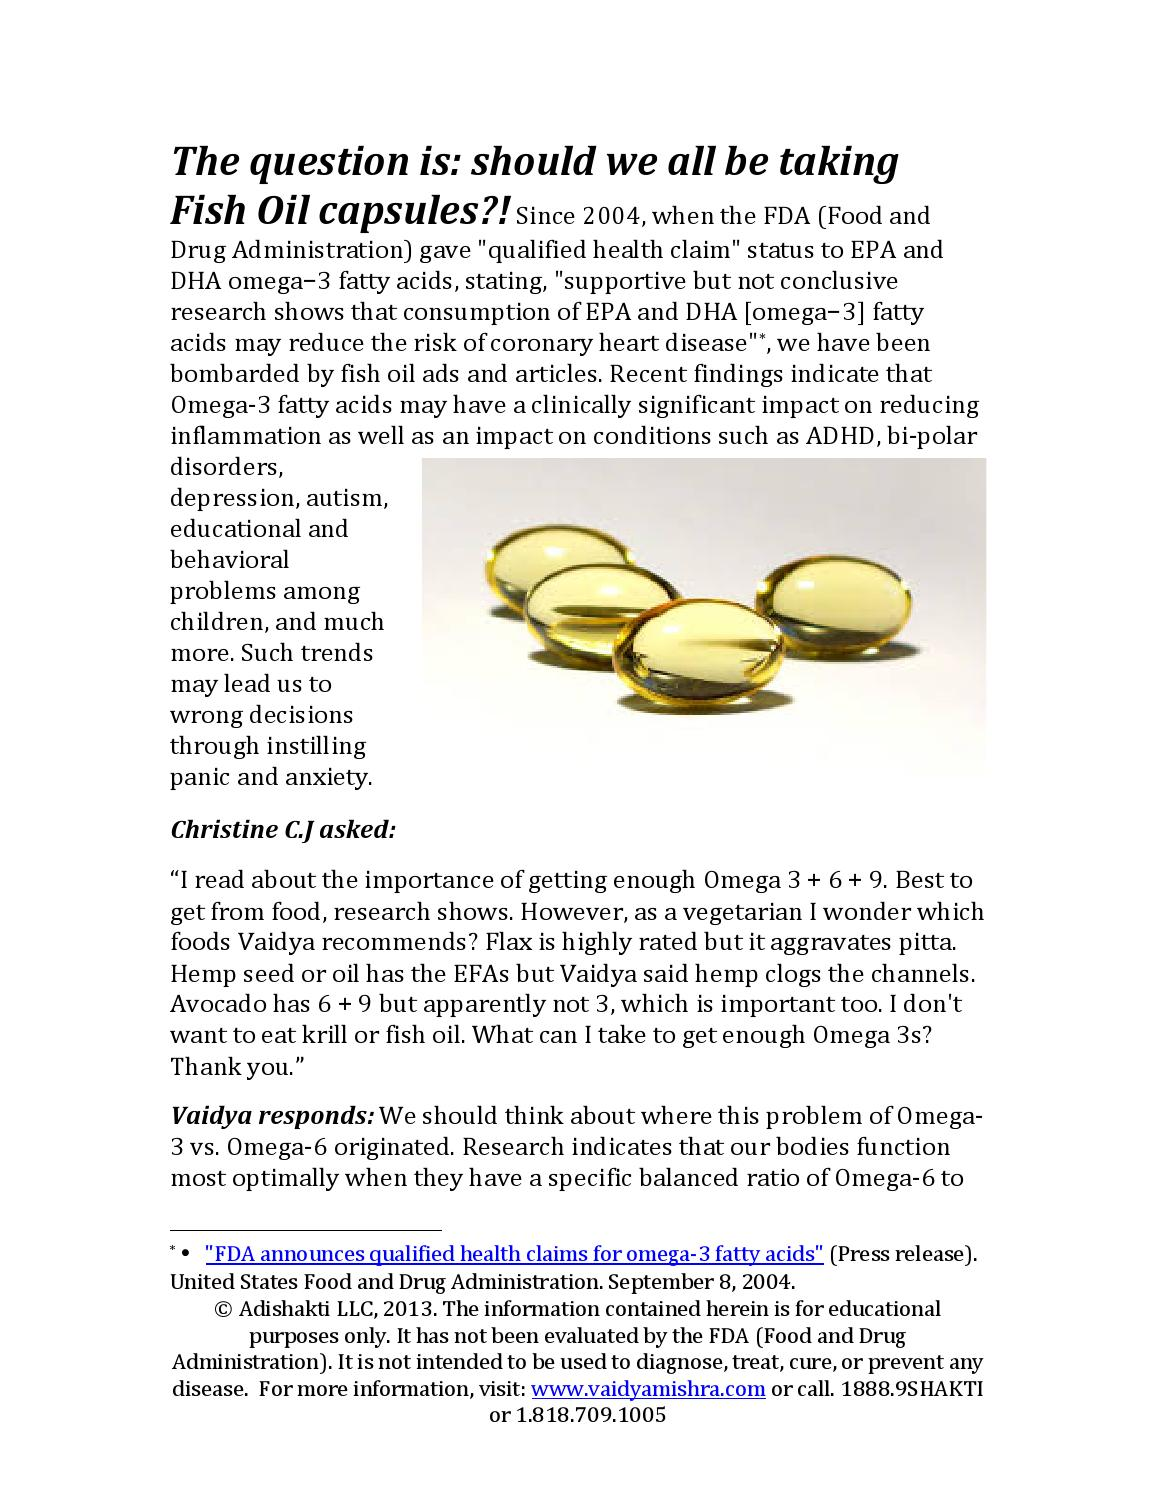 Fish oil april 5 2013 by vaidya mishra issuu for Fish oil for depression and anxiety